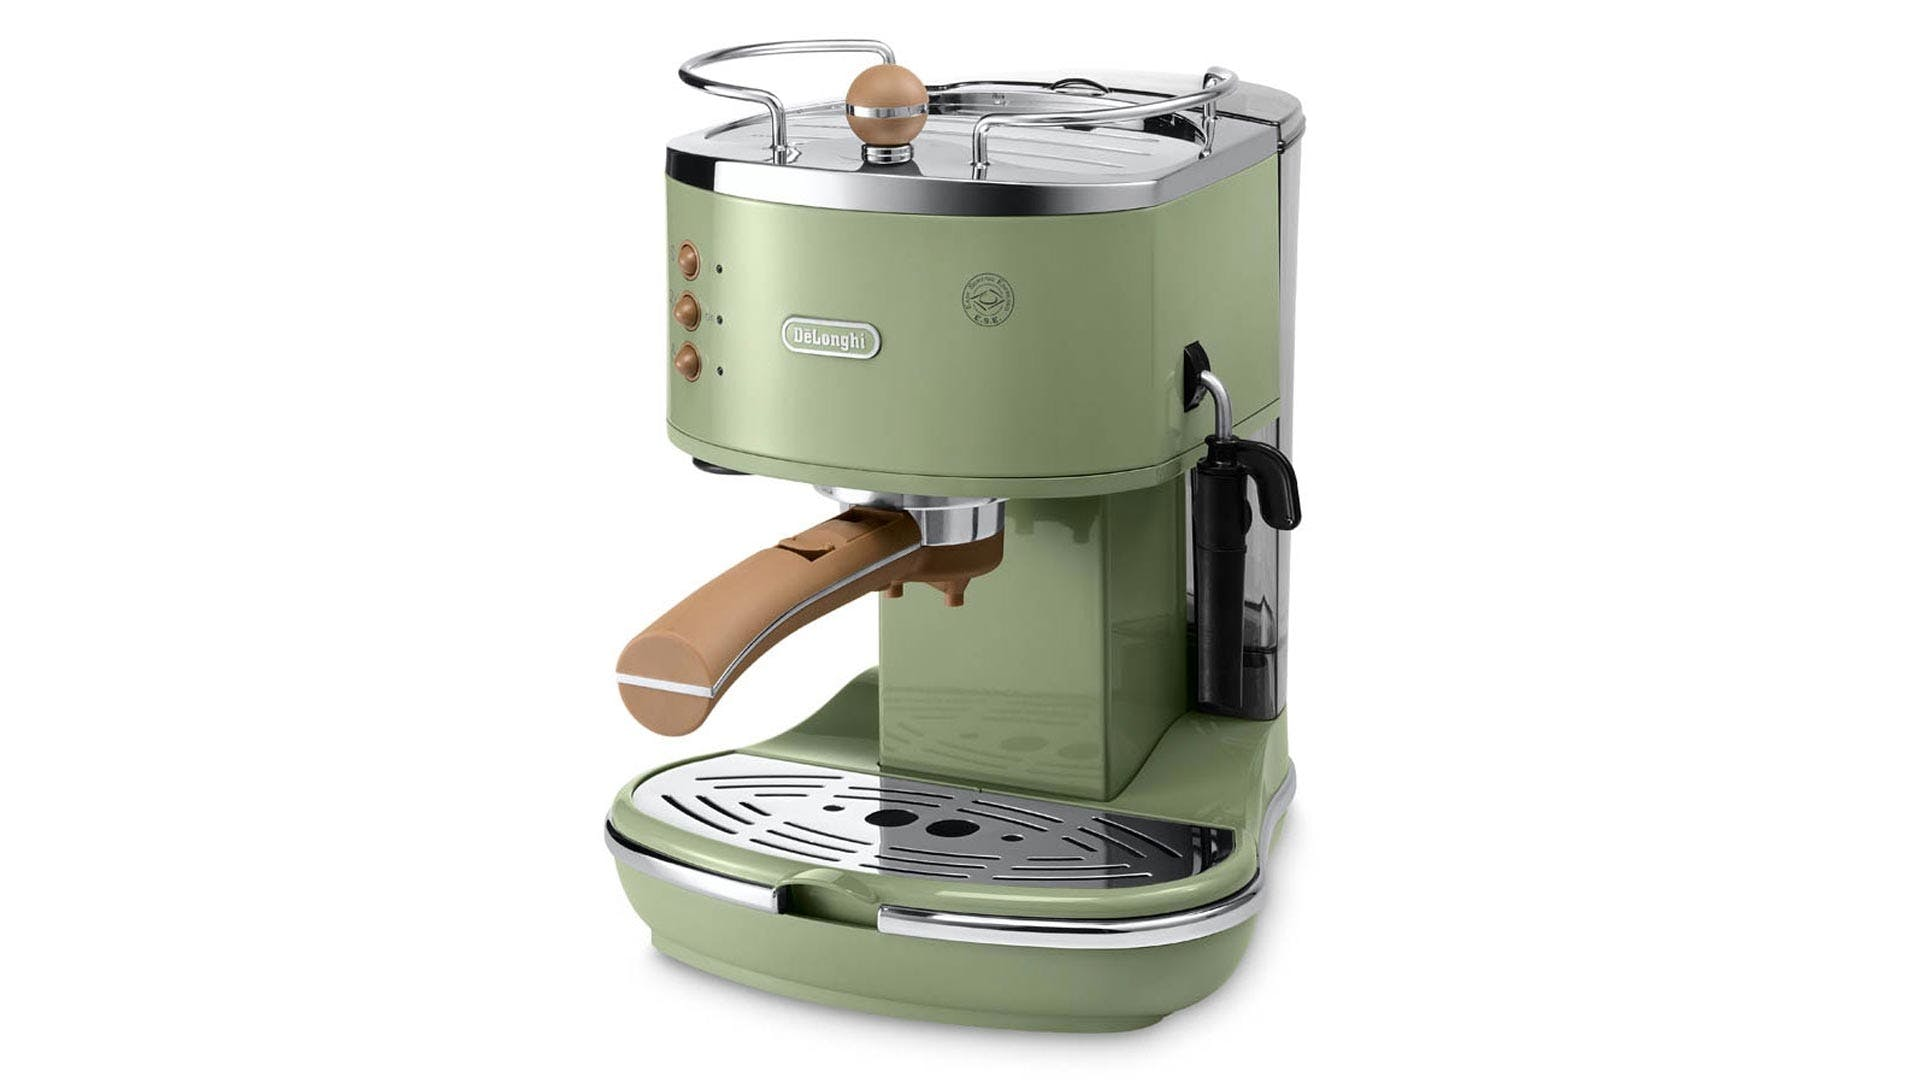 Delonghi Icona Vintage Pump Espresso Machine Green Harvey Norman